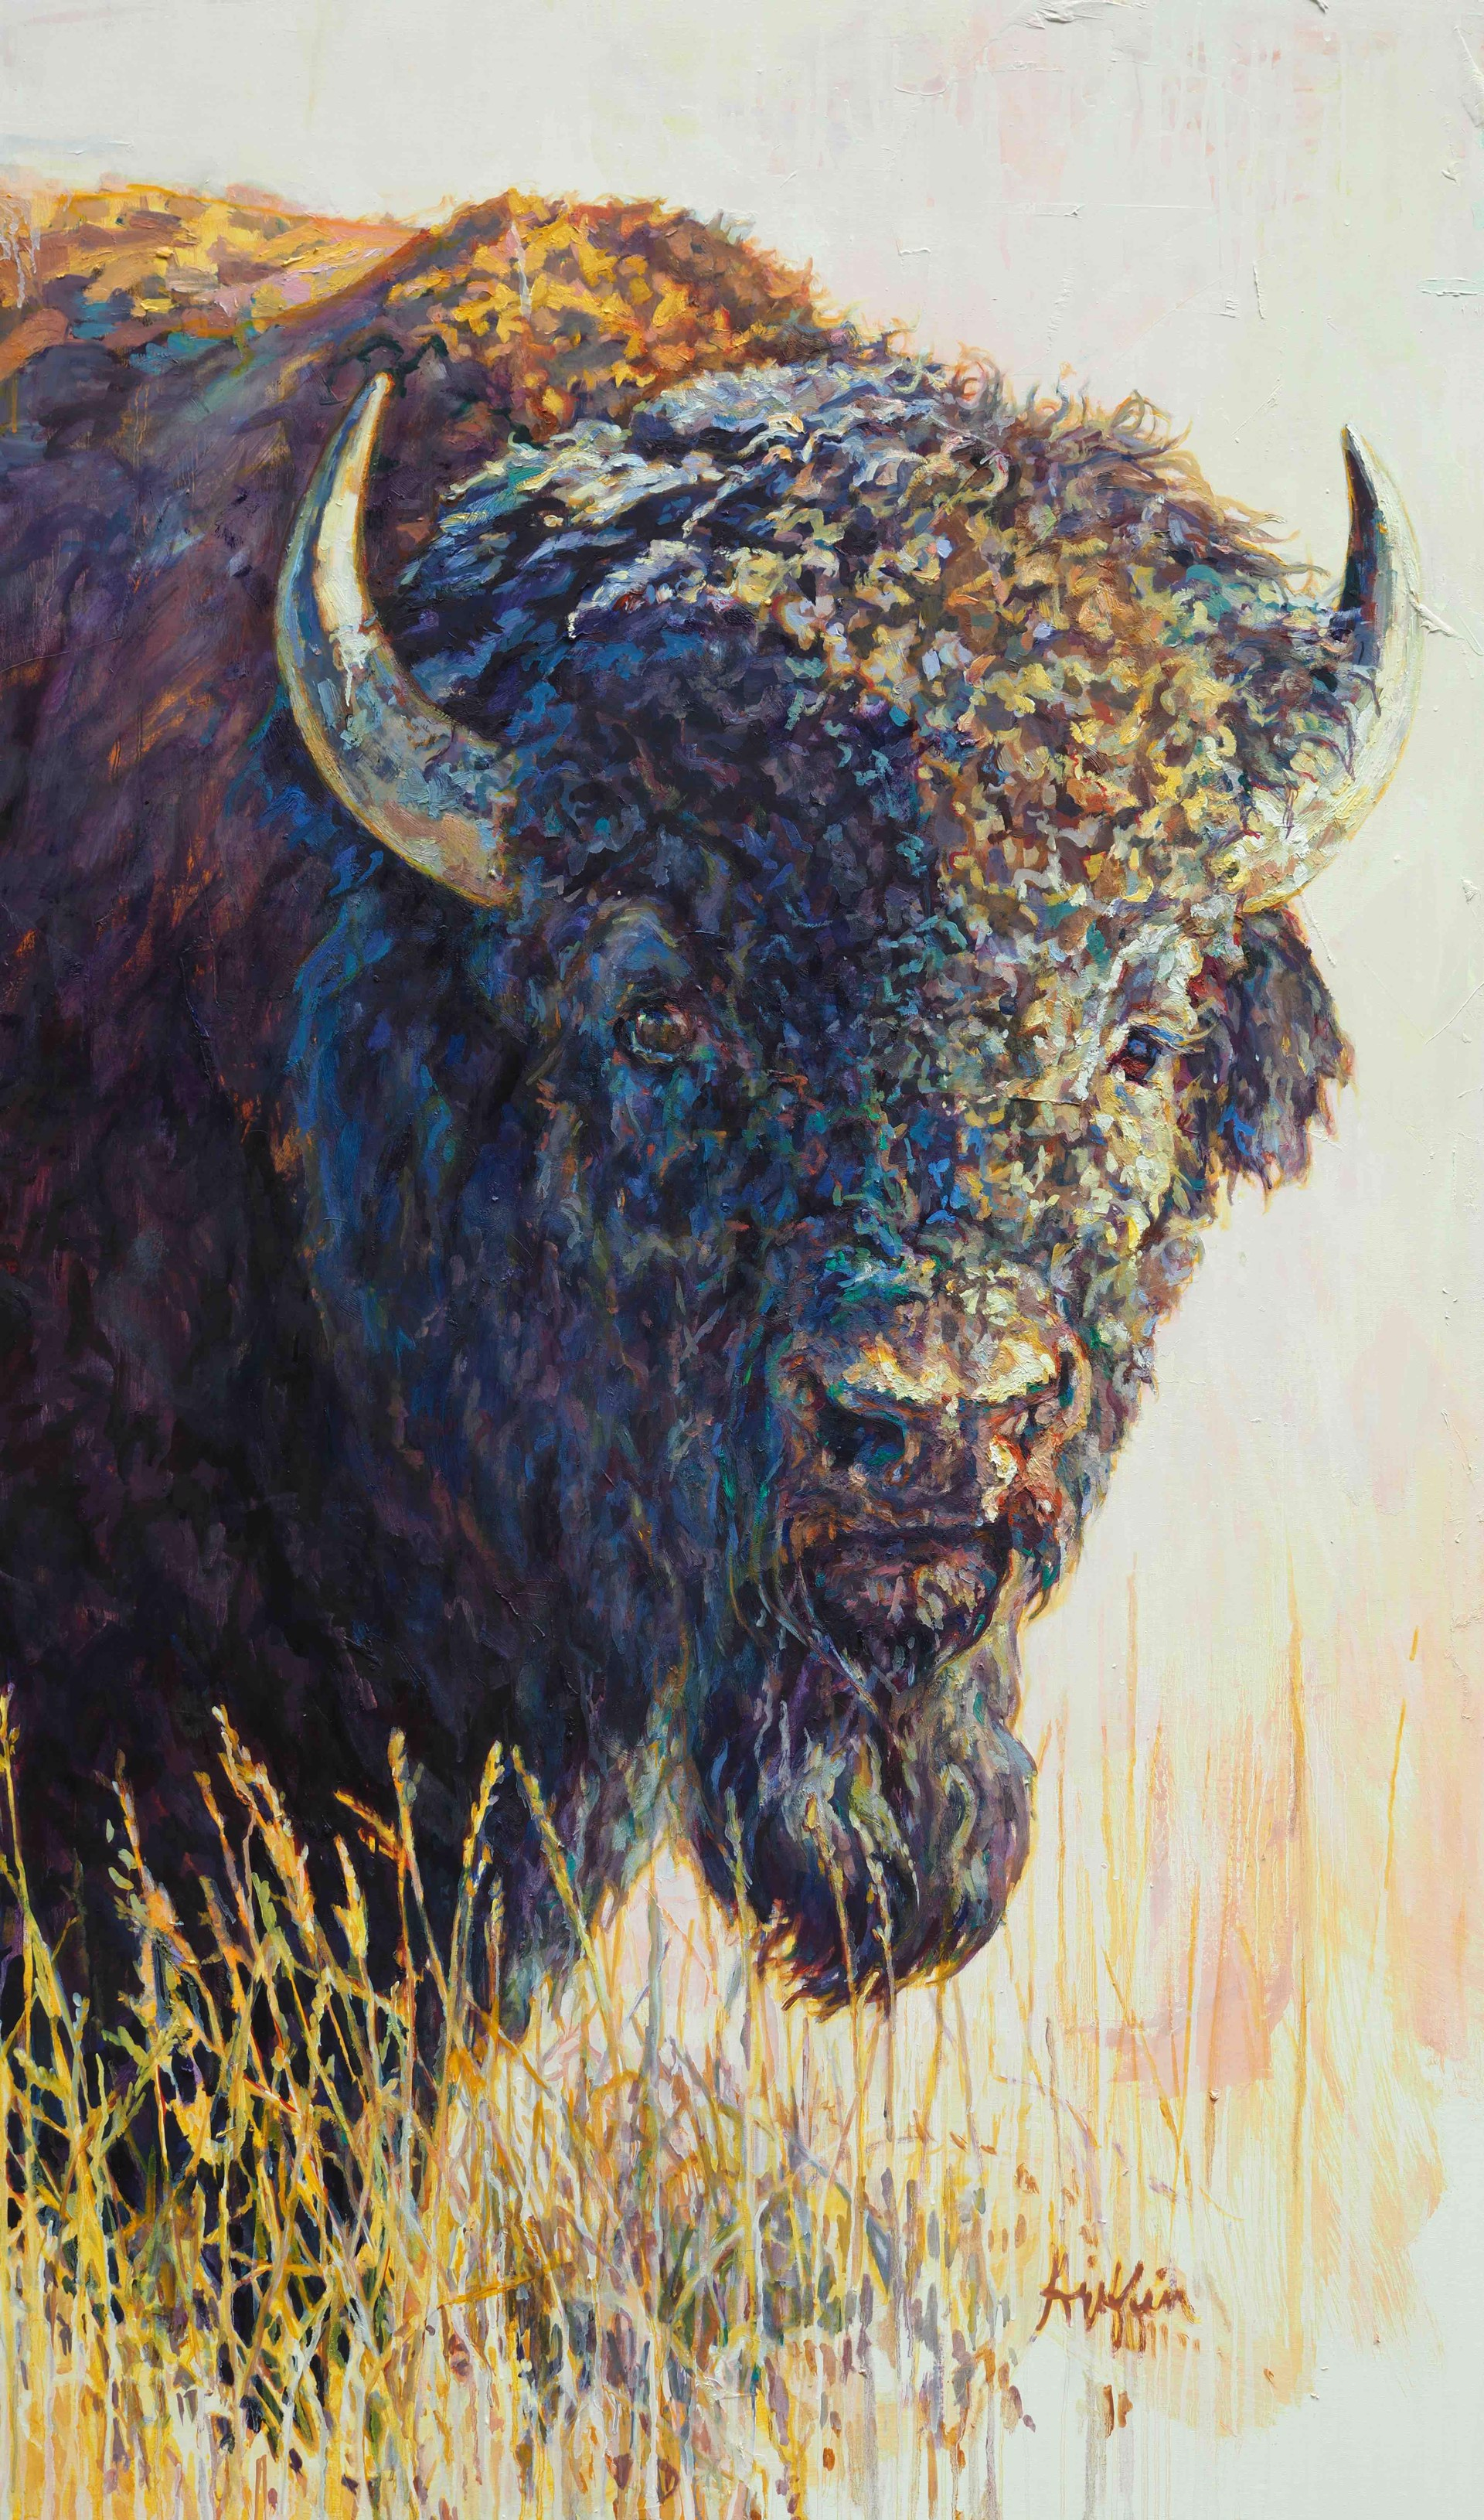 An Original Contemporary Oil Painting Of A Colorful Bull Bison Standing In Grass, By Patricia Griffin